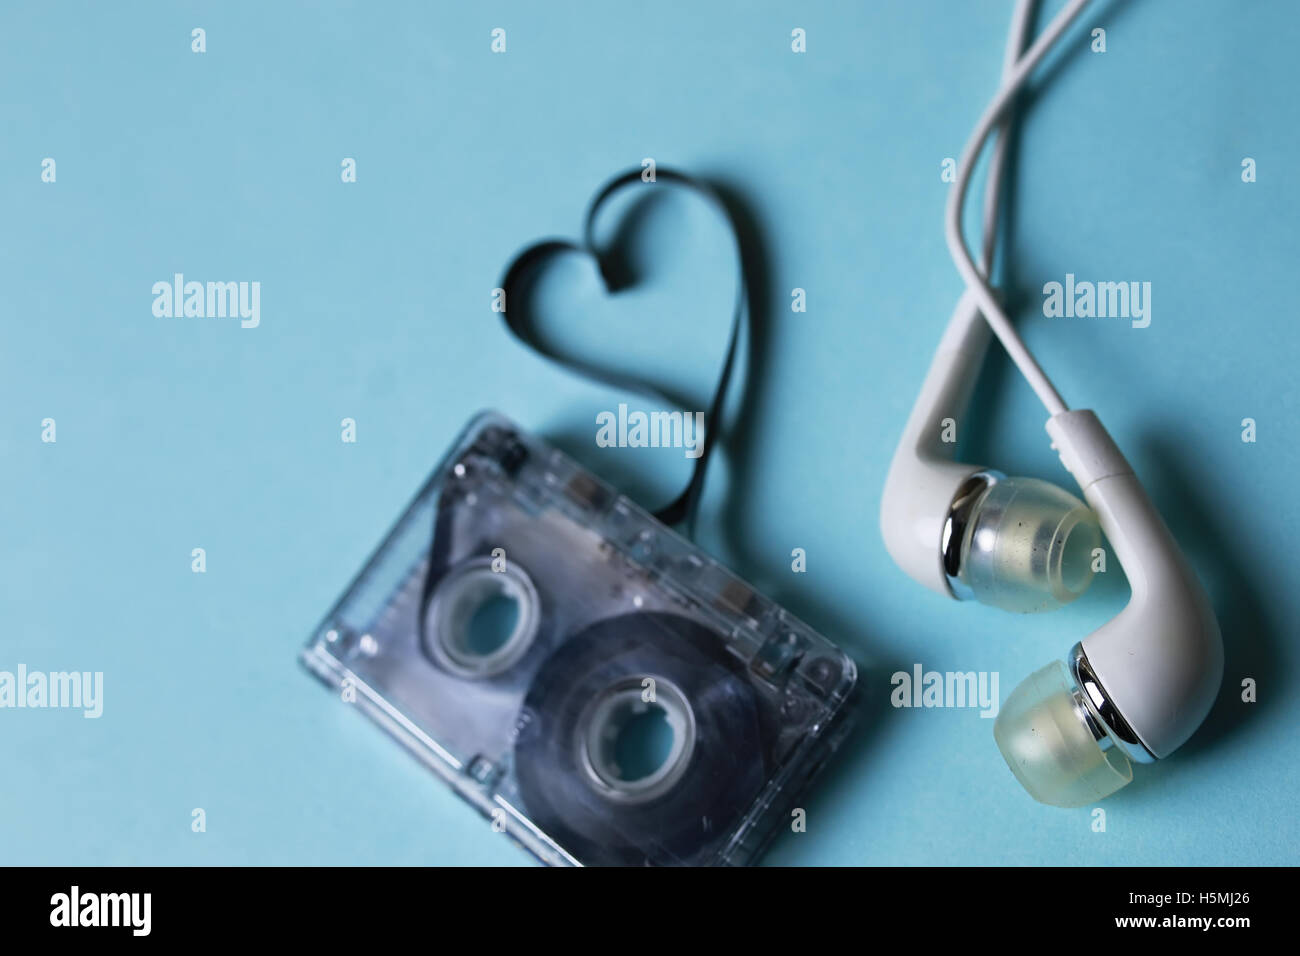 audio tape on a blue background - Stock Image